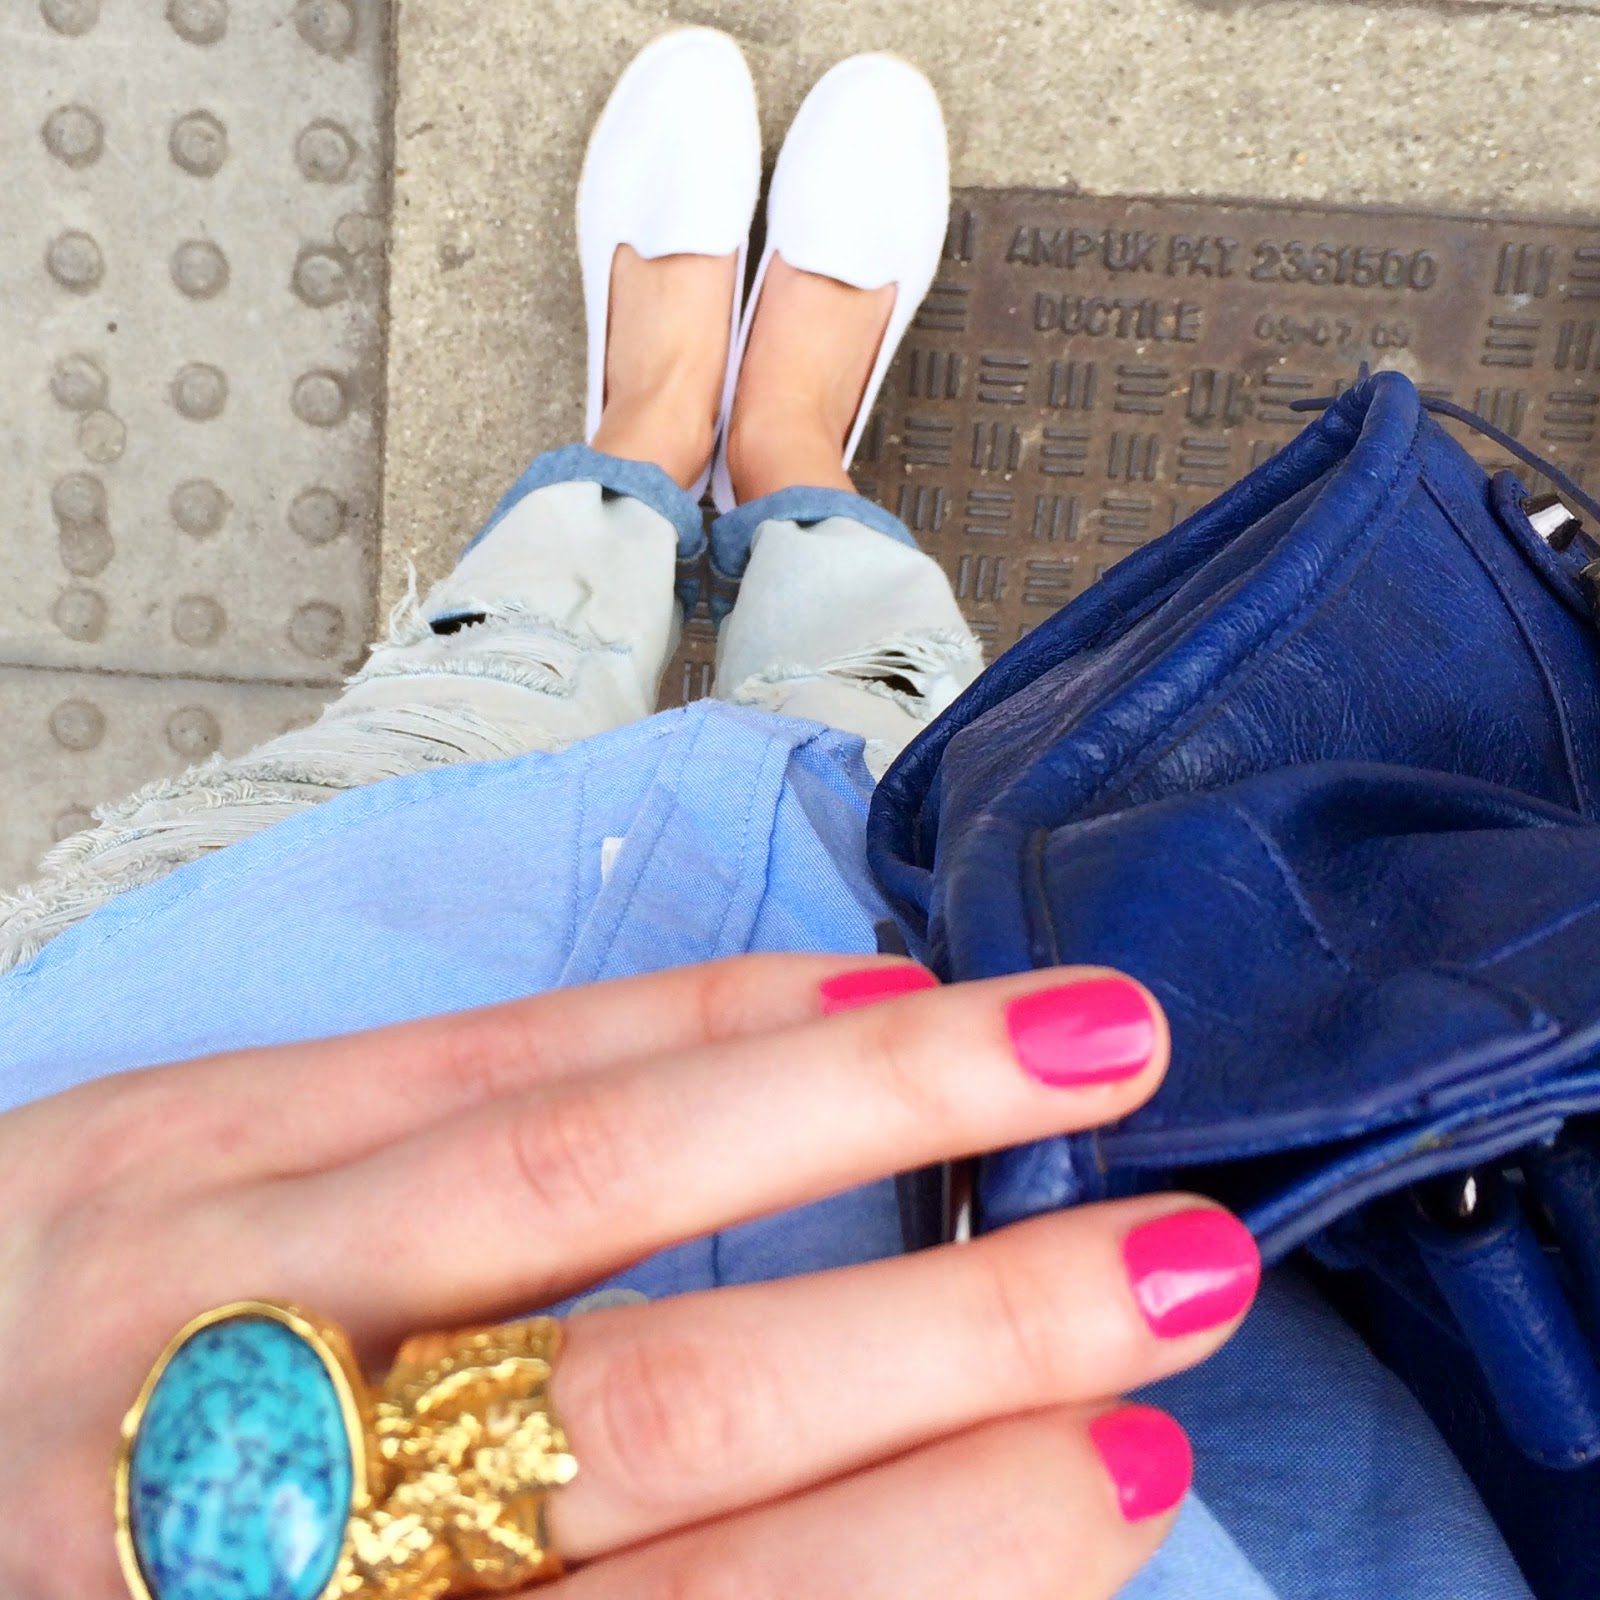 from where i stand, fwist, dior plaza, dior plaza review, ysl ring, ysl arty ring, asos espadrilles, asos boyfriend jeans